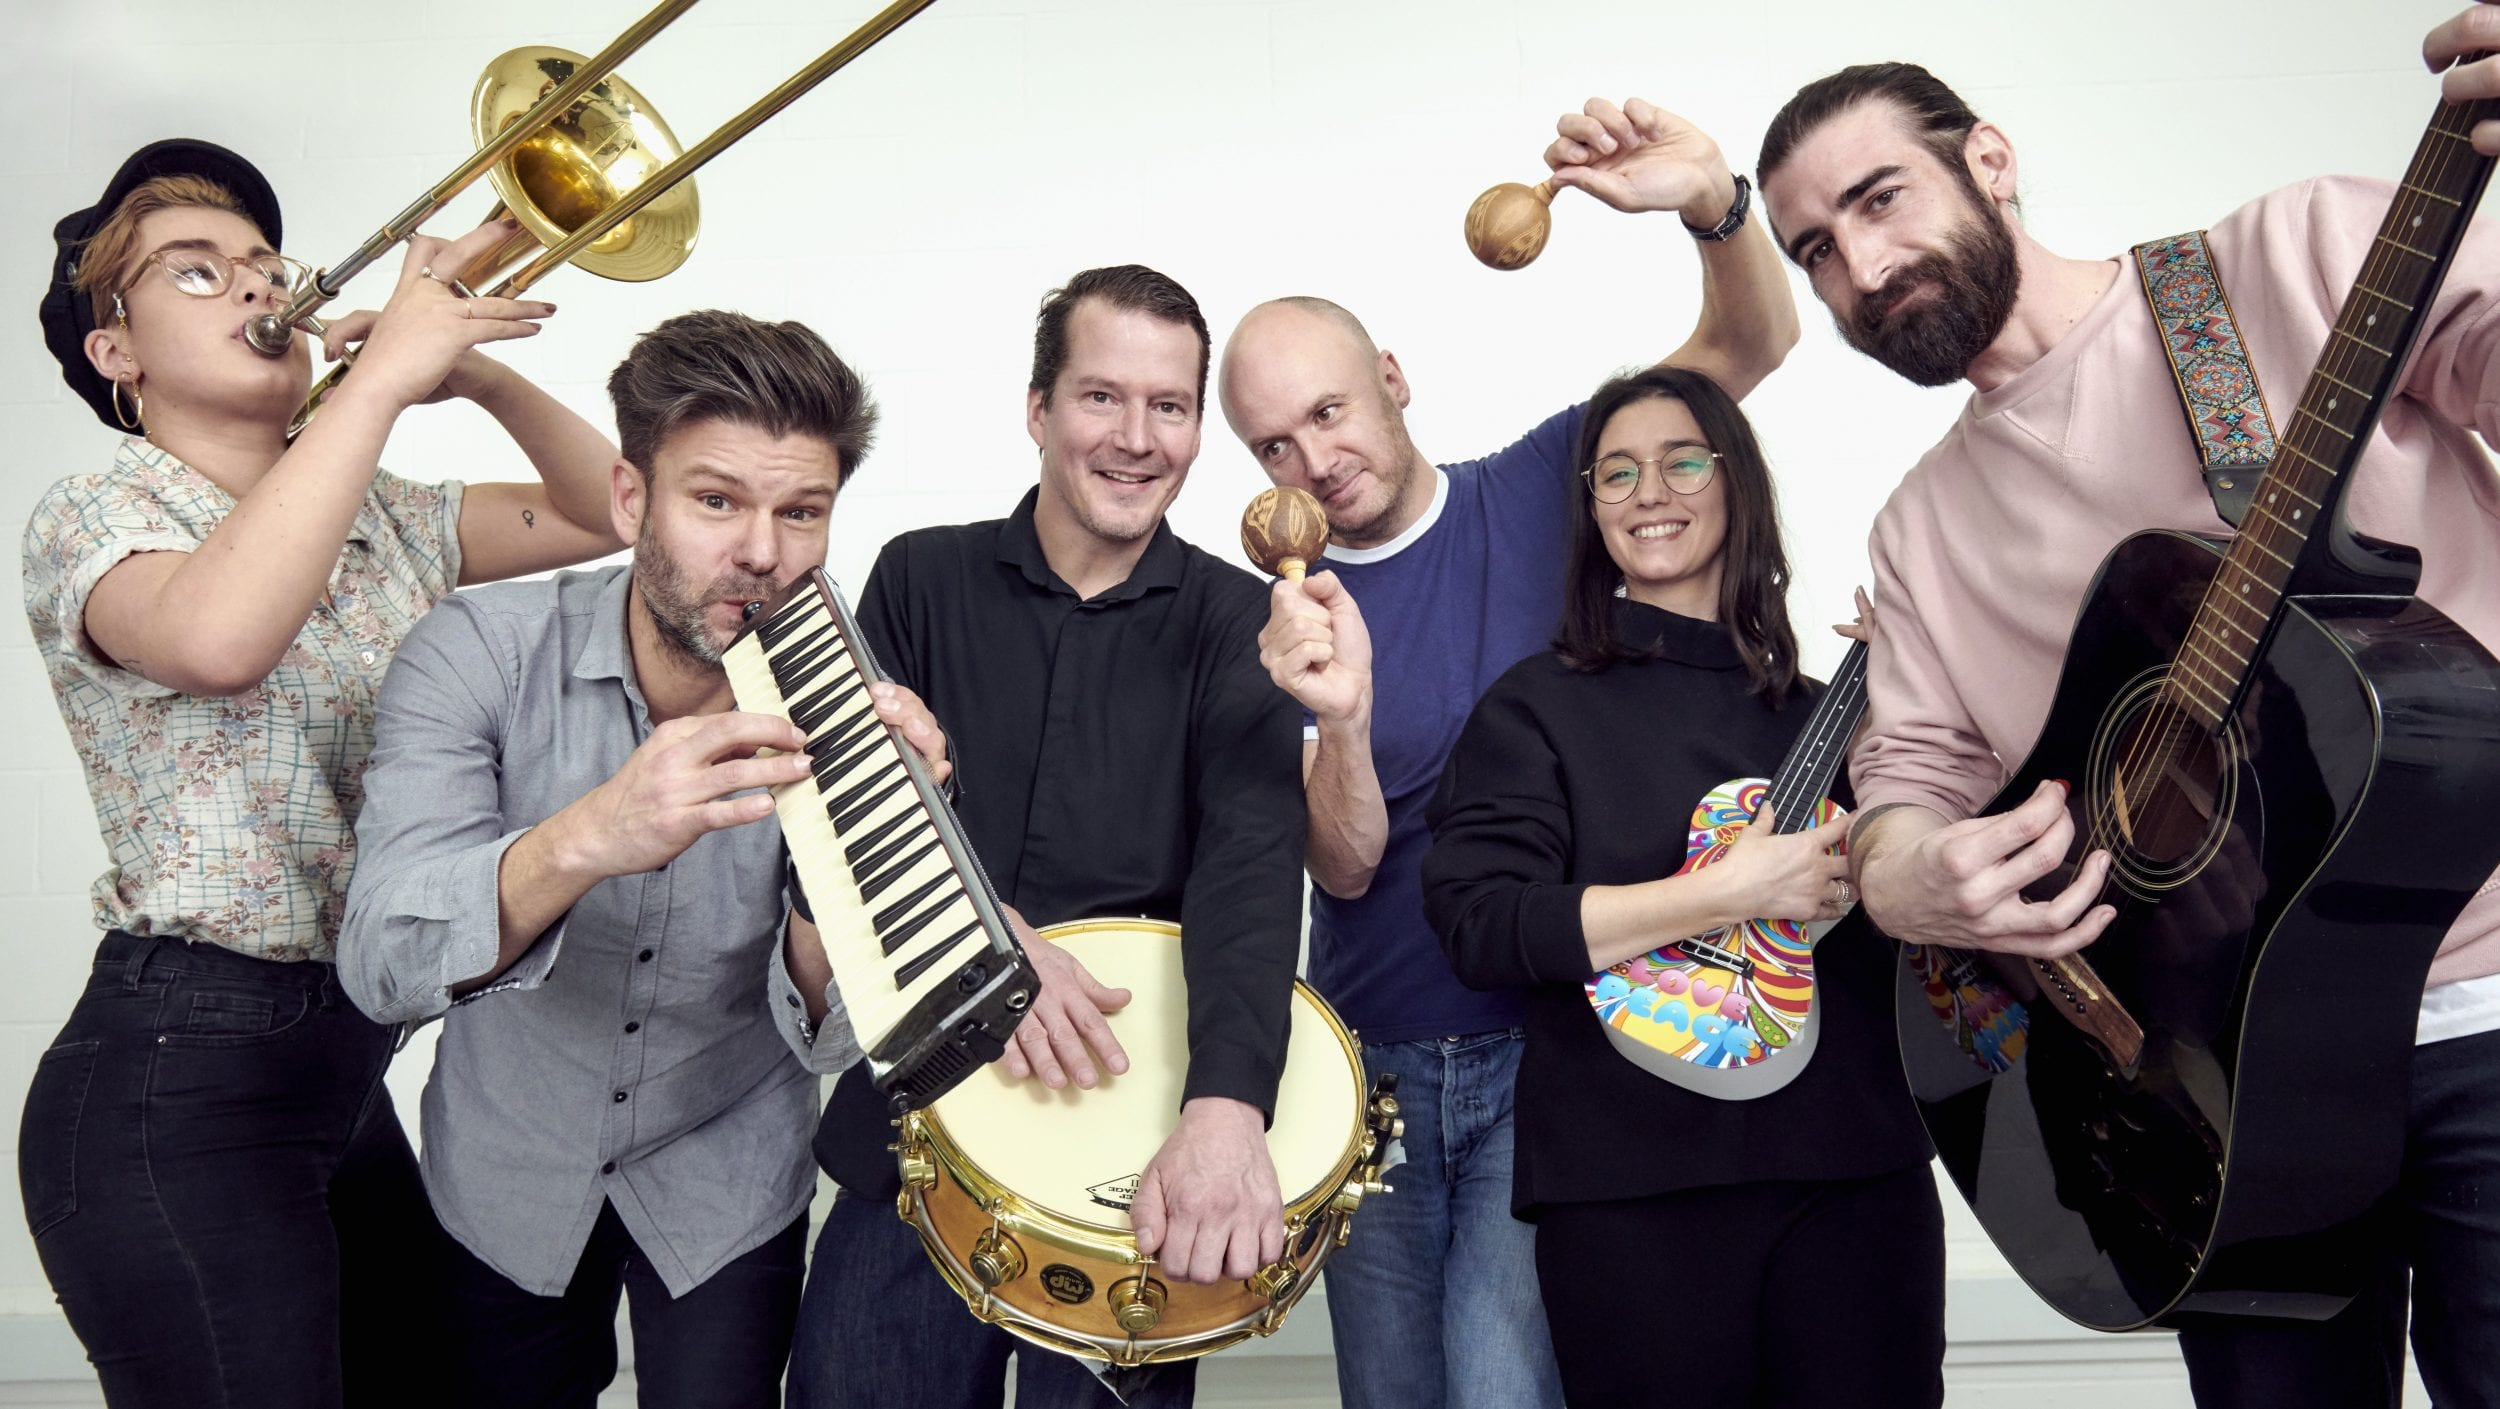 Cloud9Media group shot with instruments